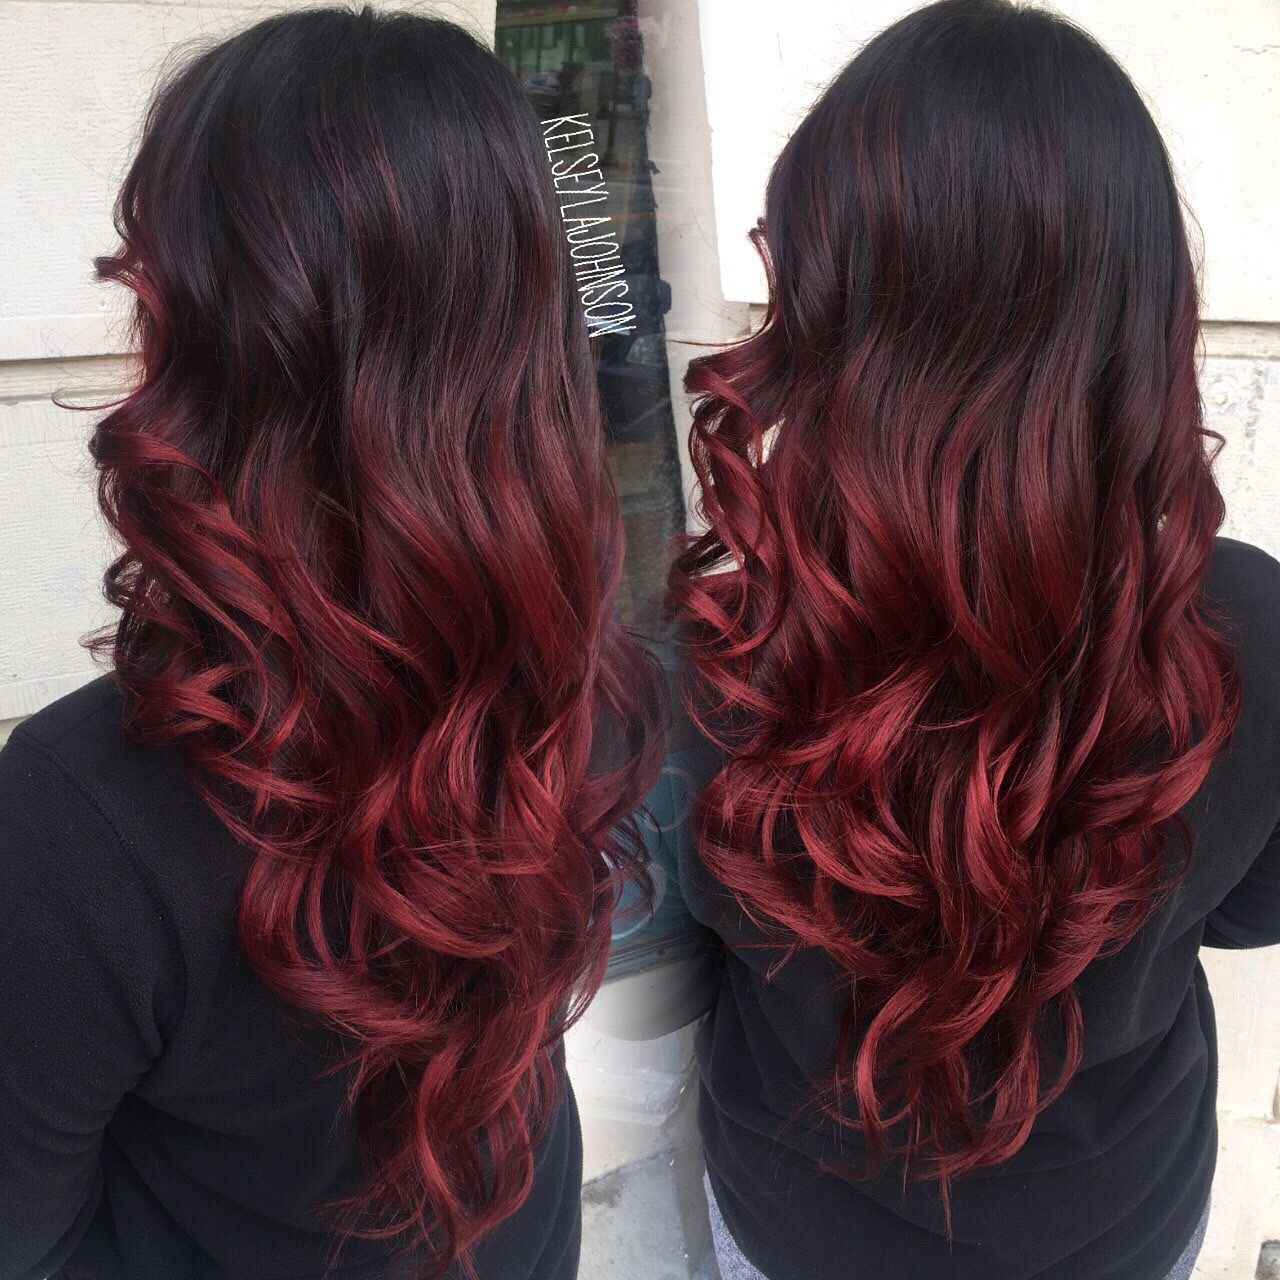 Brazilian Raspberry Ombre Hair Extensions Red Balayage Hair Red Ombre Hair Hair Styles